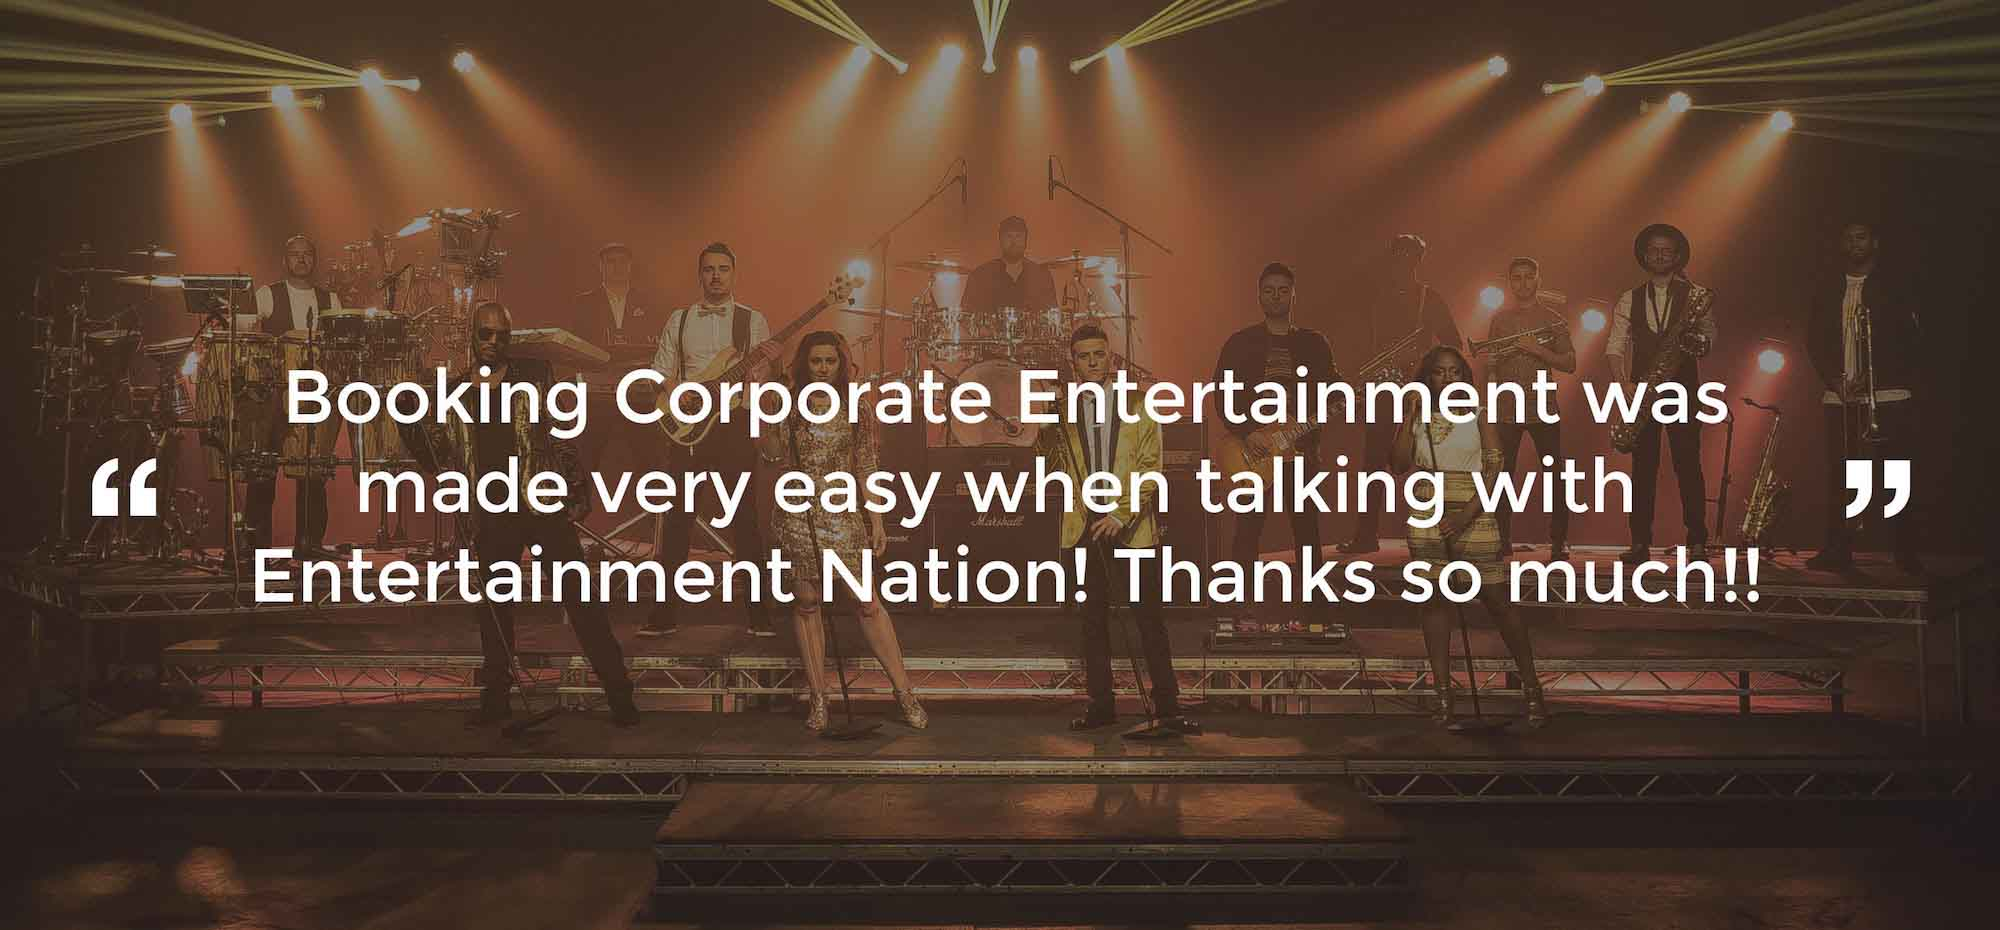 Client Review of Corporate Entertainment Devon